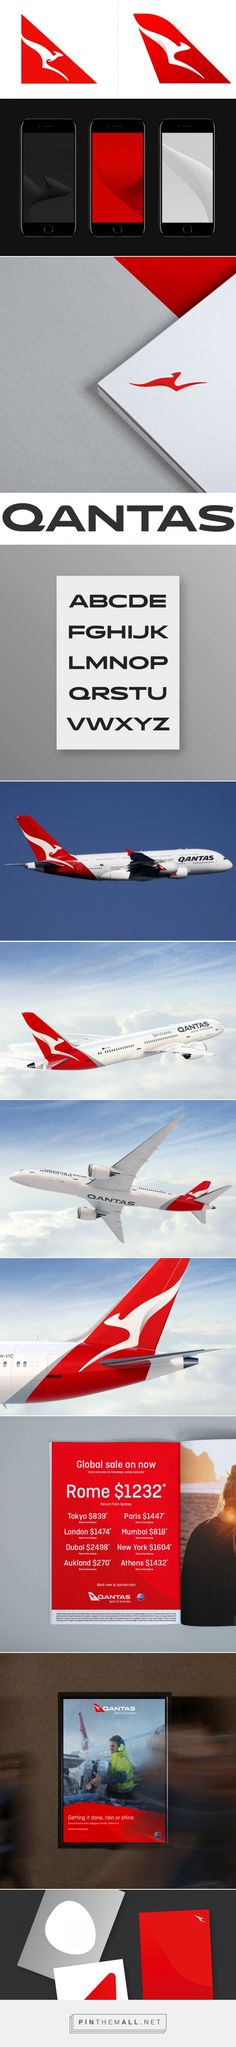 The Kangaroo Symbol Of Qantas Airlines Earned The Carrier The